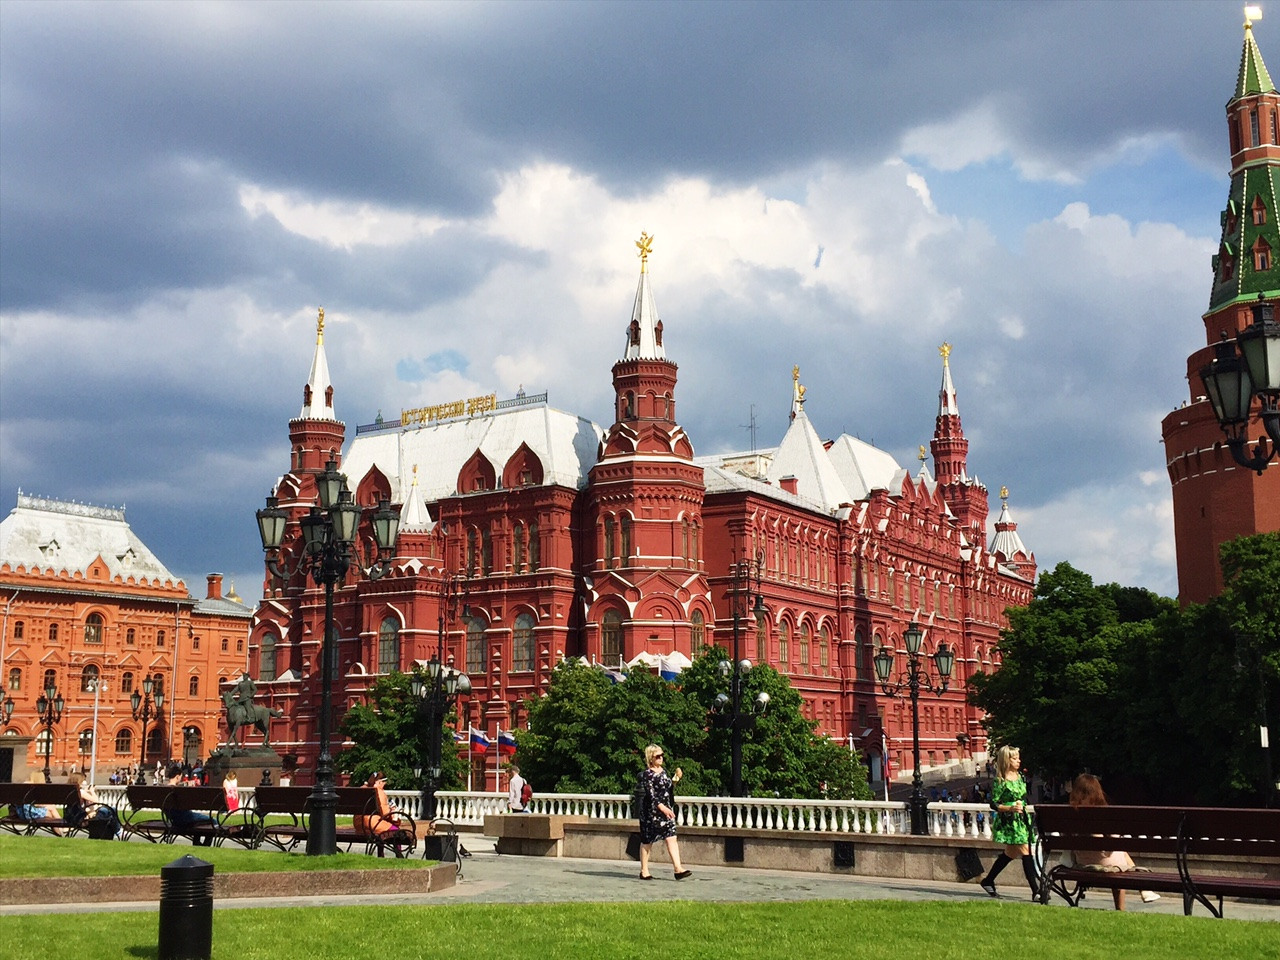 In the Kremlin, they decided not to react to Savchenkos arrival in Moscow on 10/26/2016